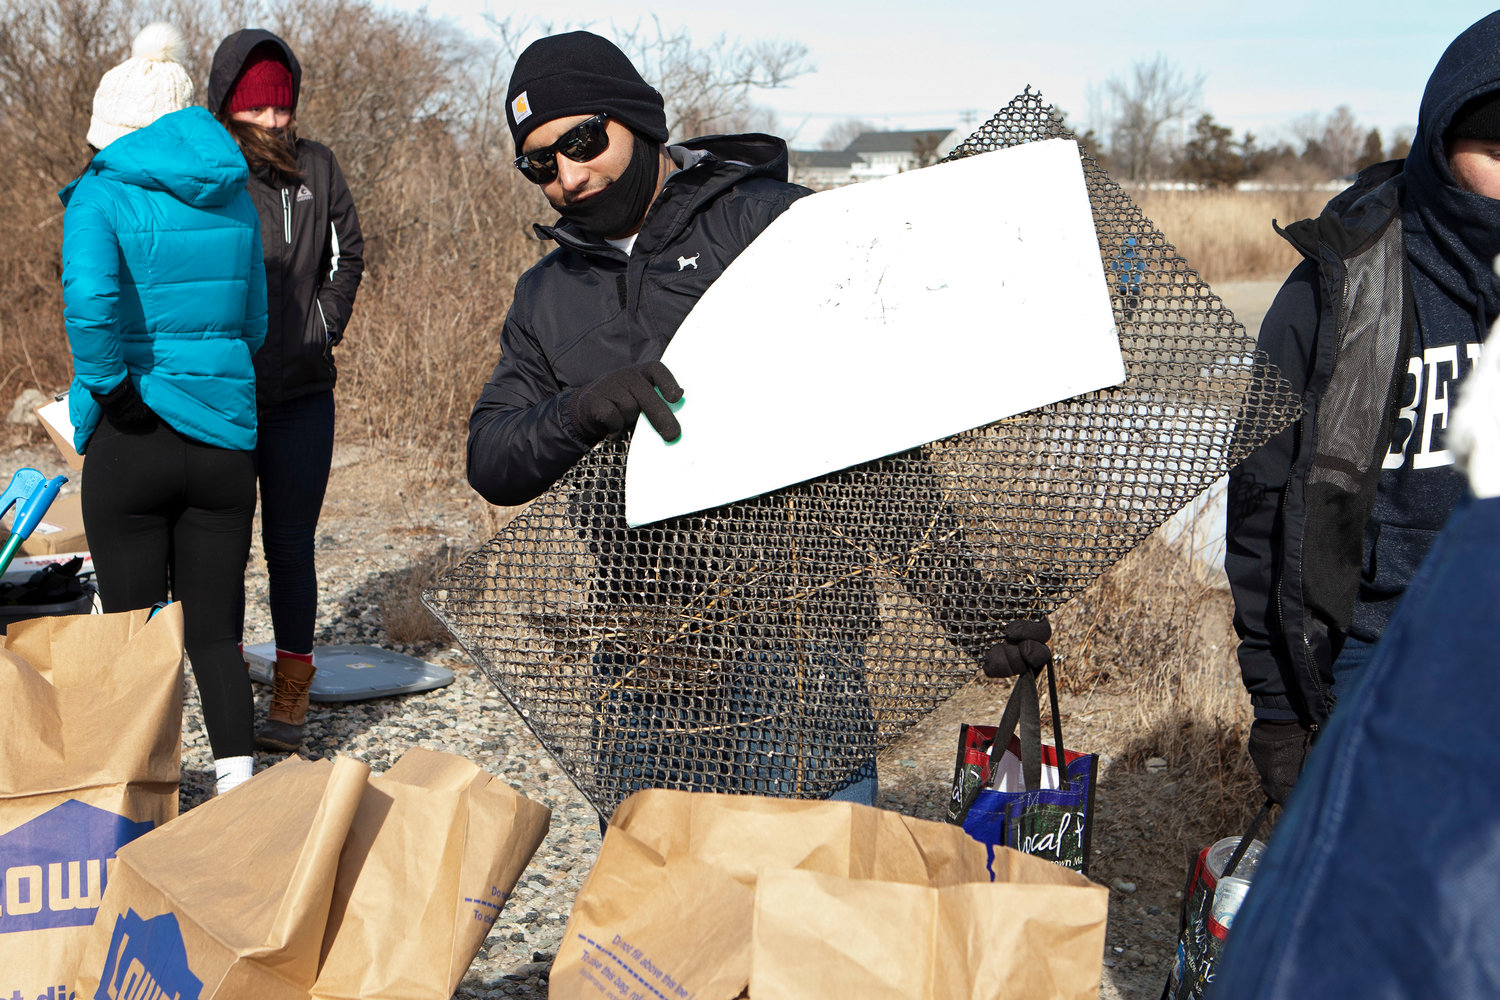 Jinal Patel carries trash he collected, including a large piece of foam and a metal grate, to the collection point.